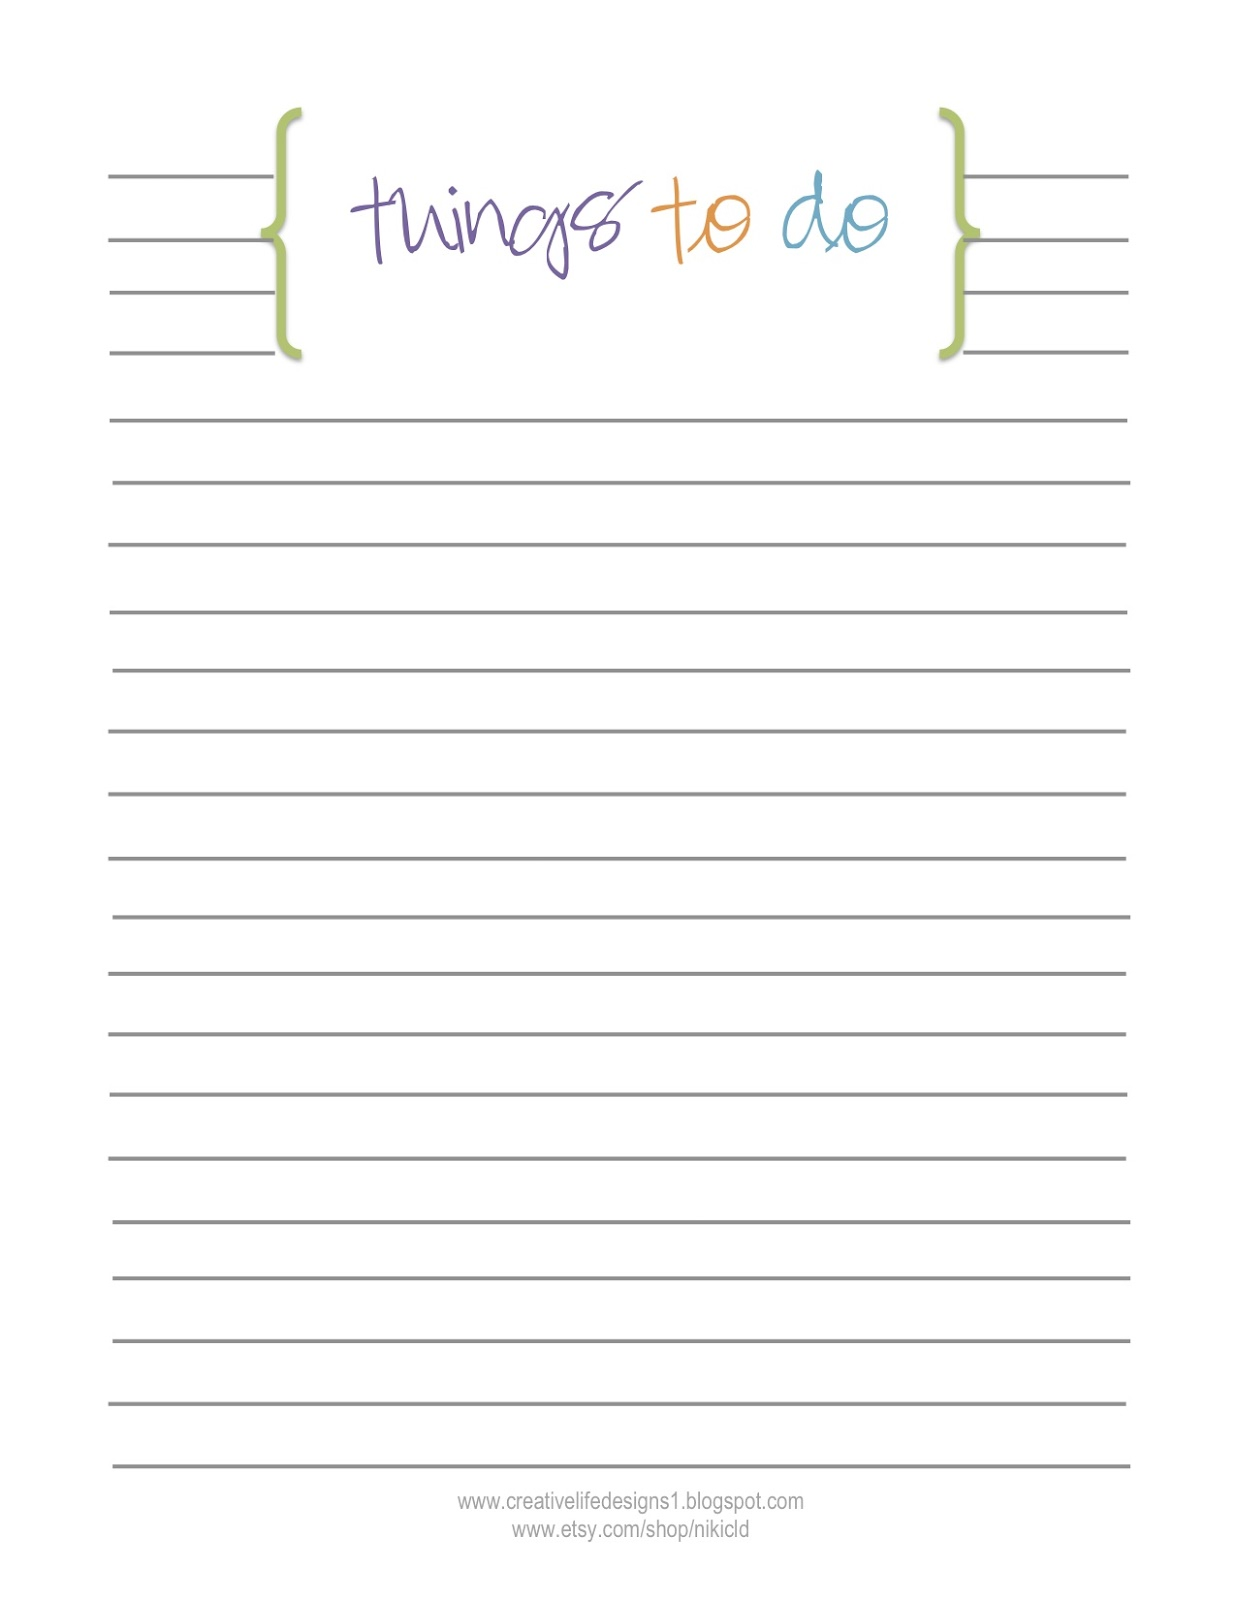 do list template .